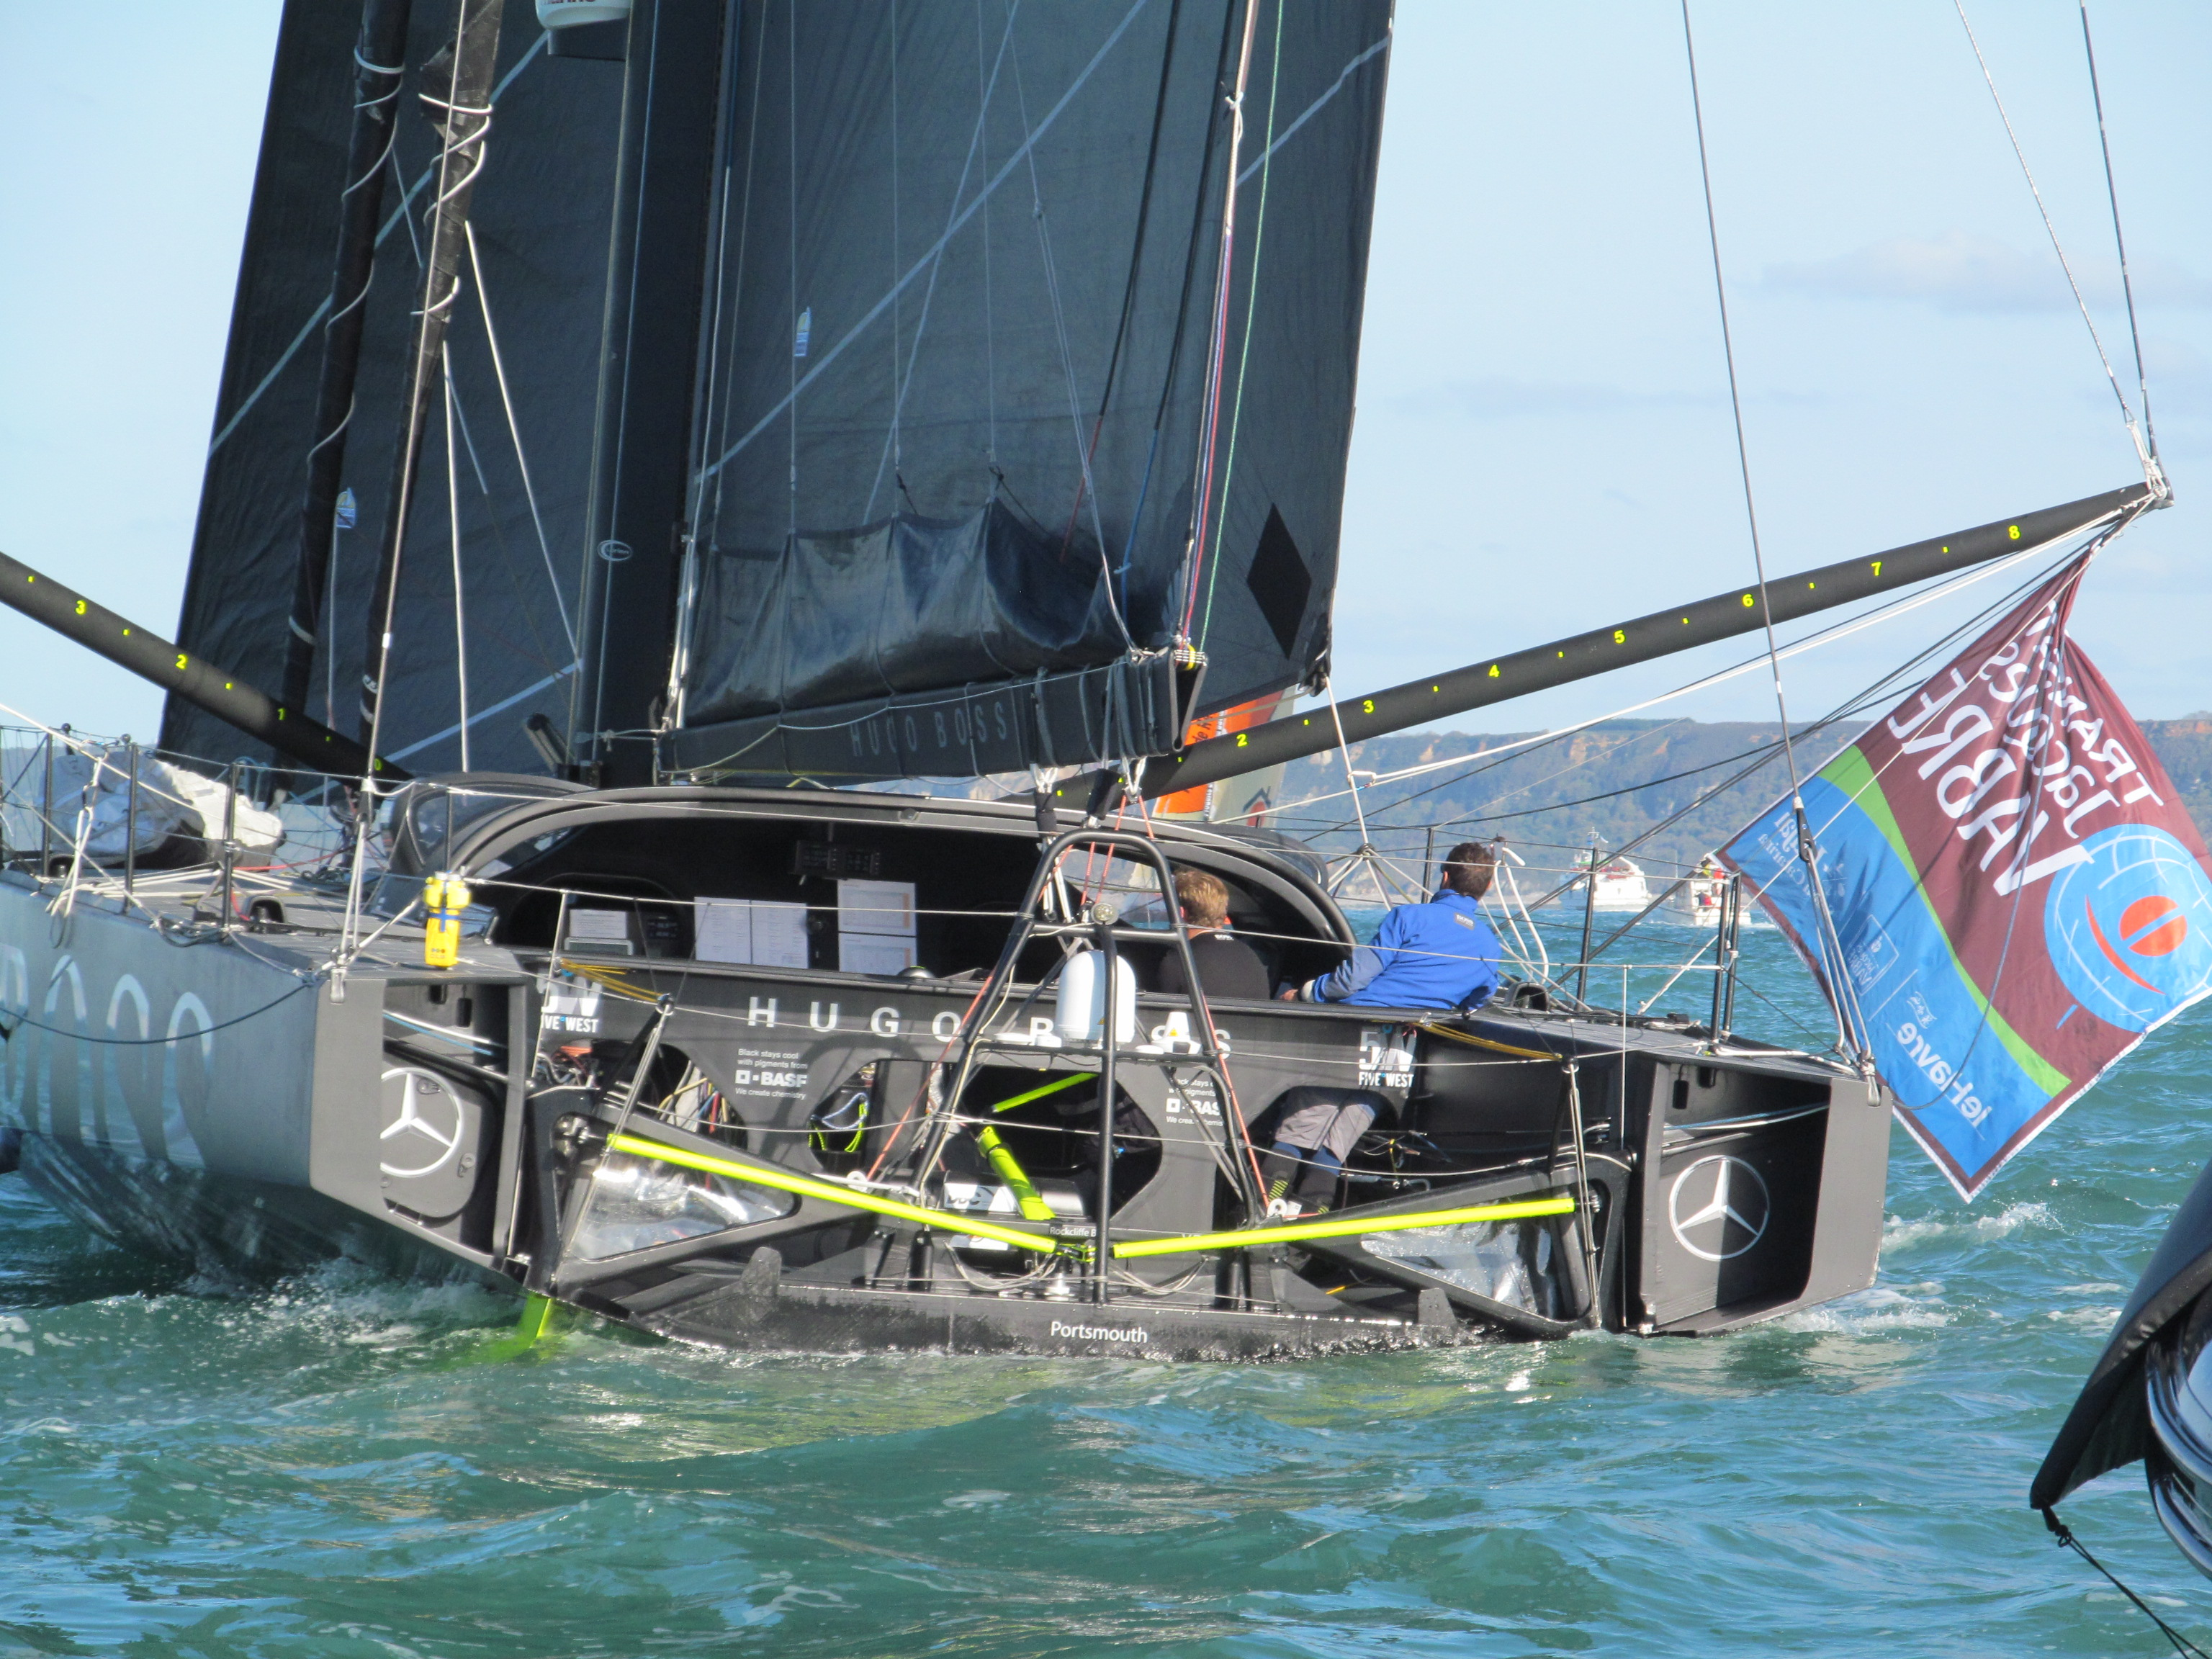 Transat Jacques Vabre - Hugo Boss